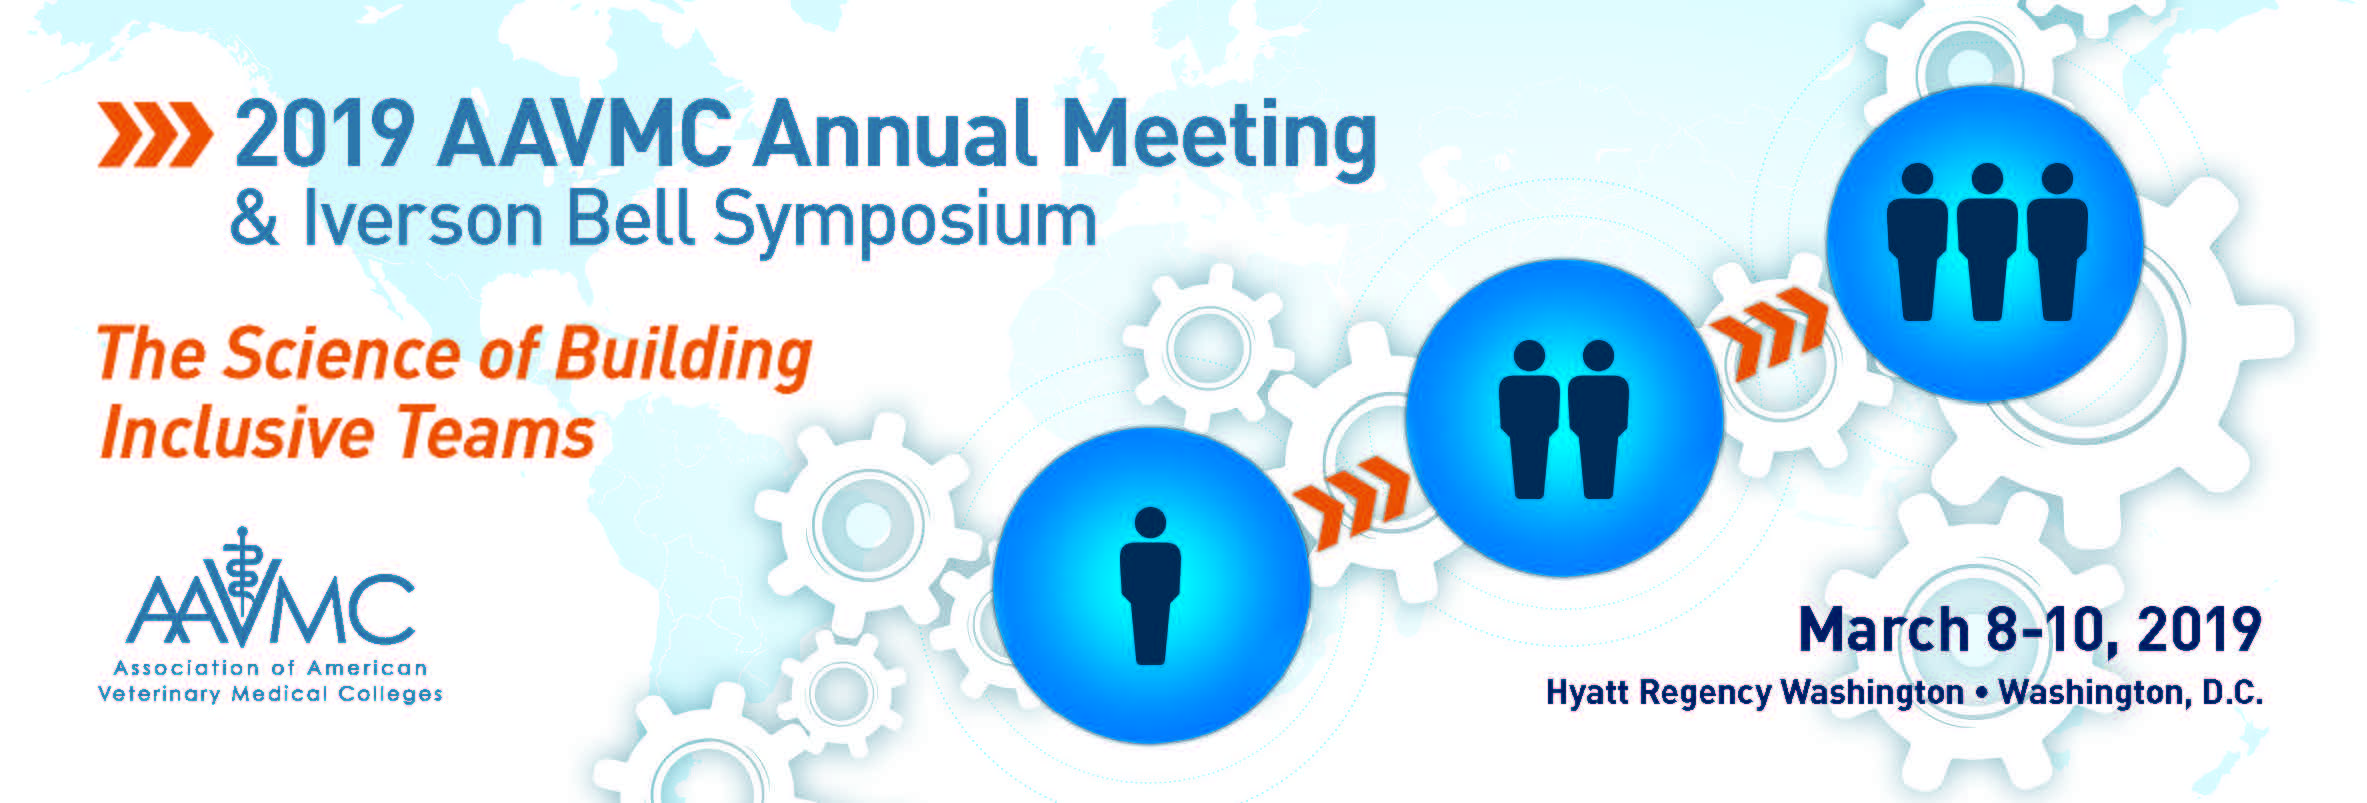 2019 Annual Conference and Iverson Bell Symposium